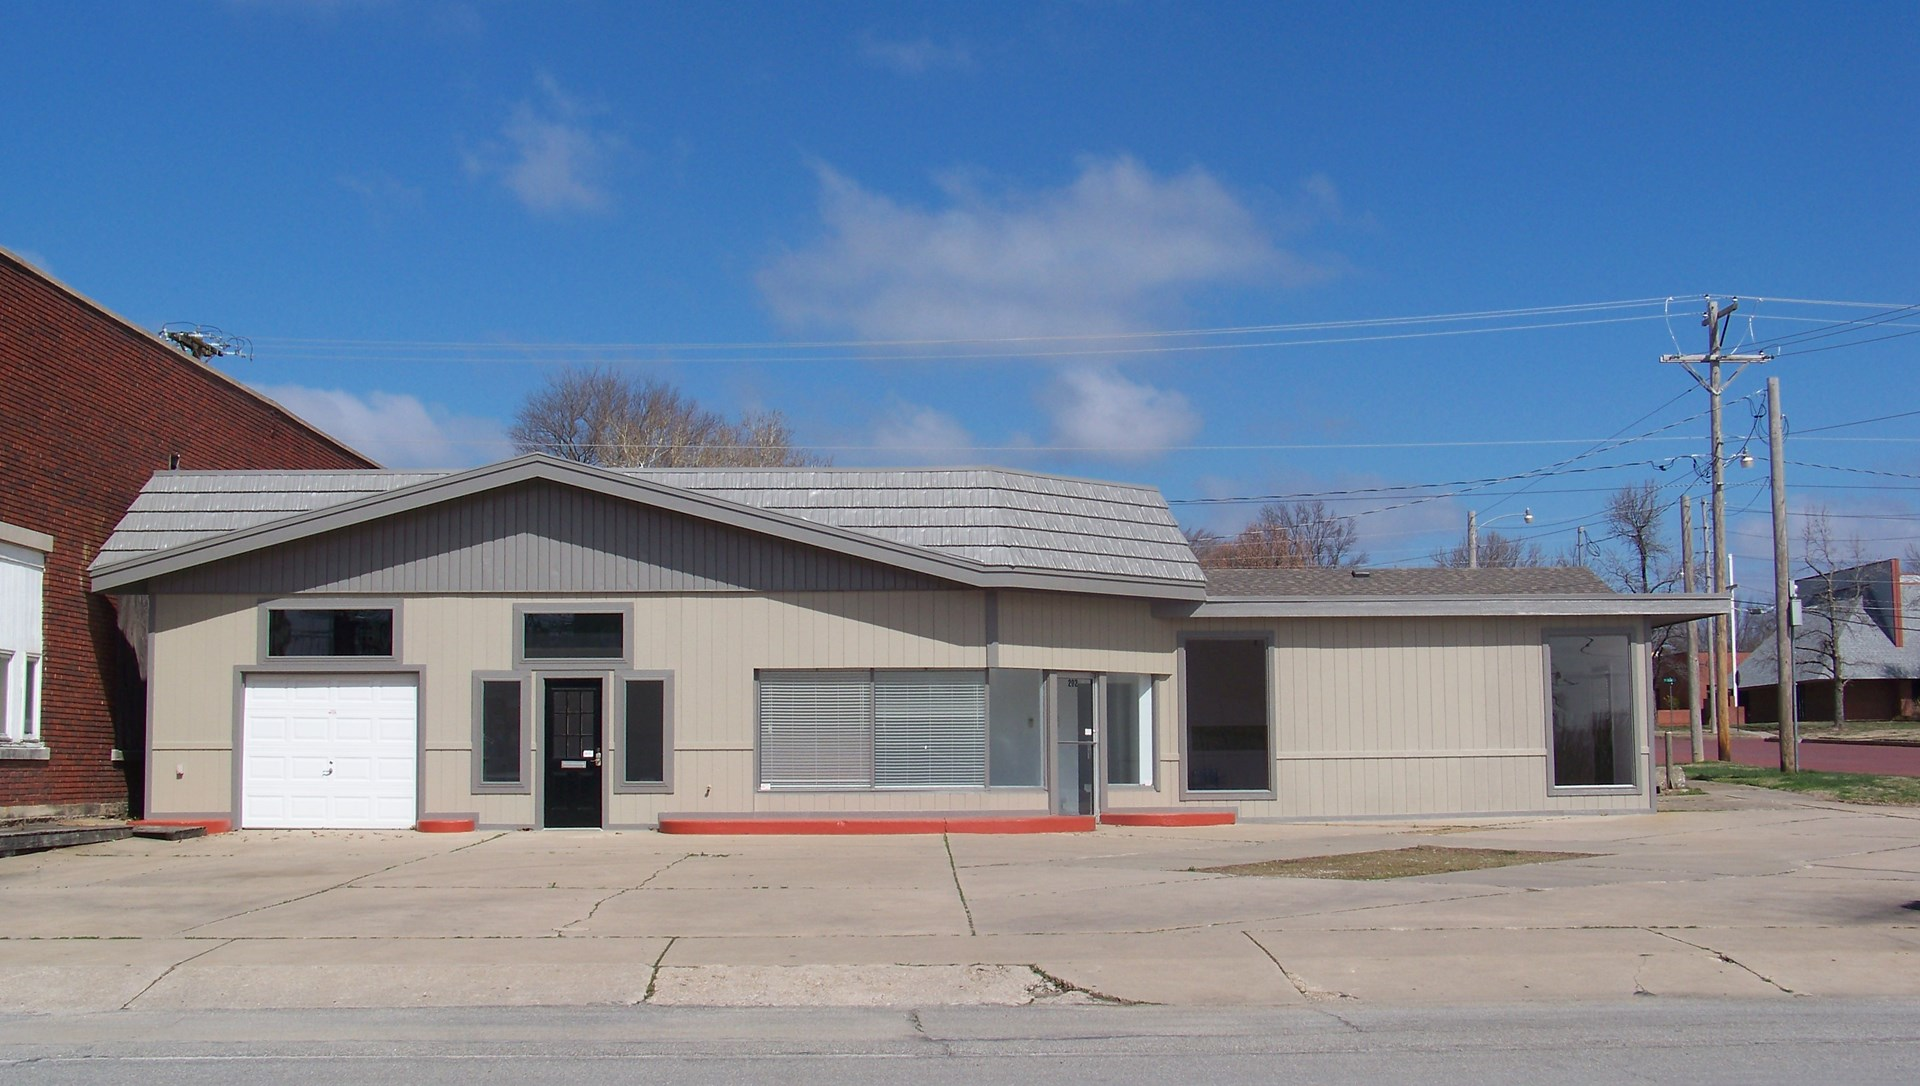 Commercial Building for Sale in Chanute, KS